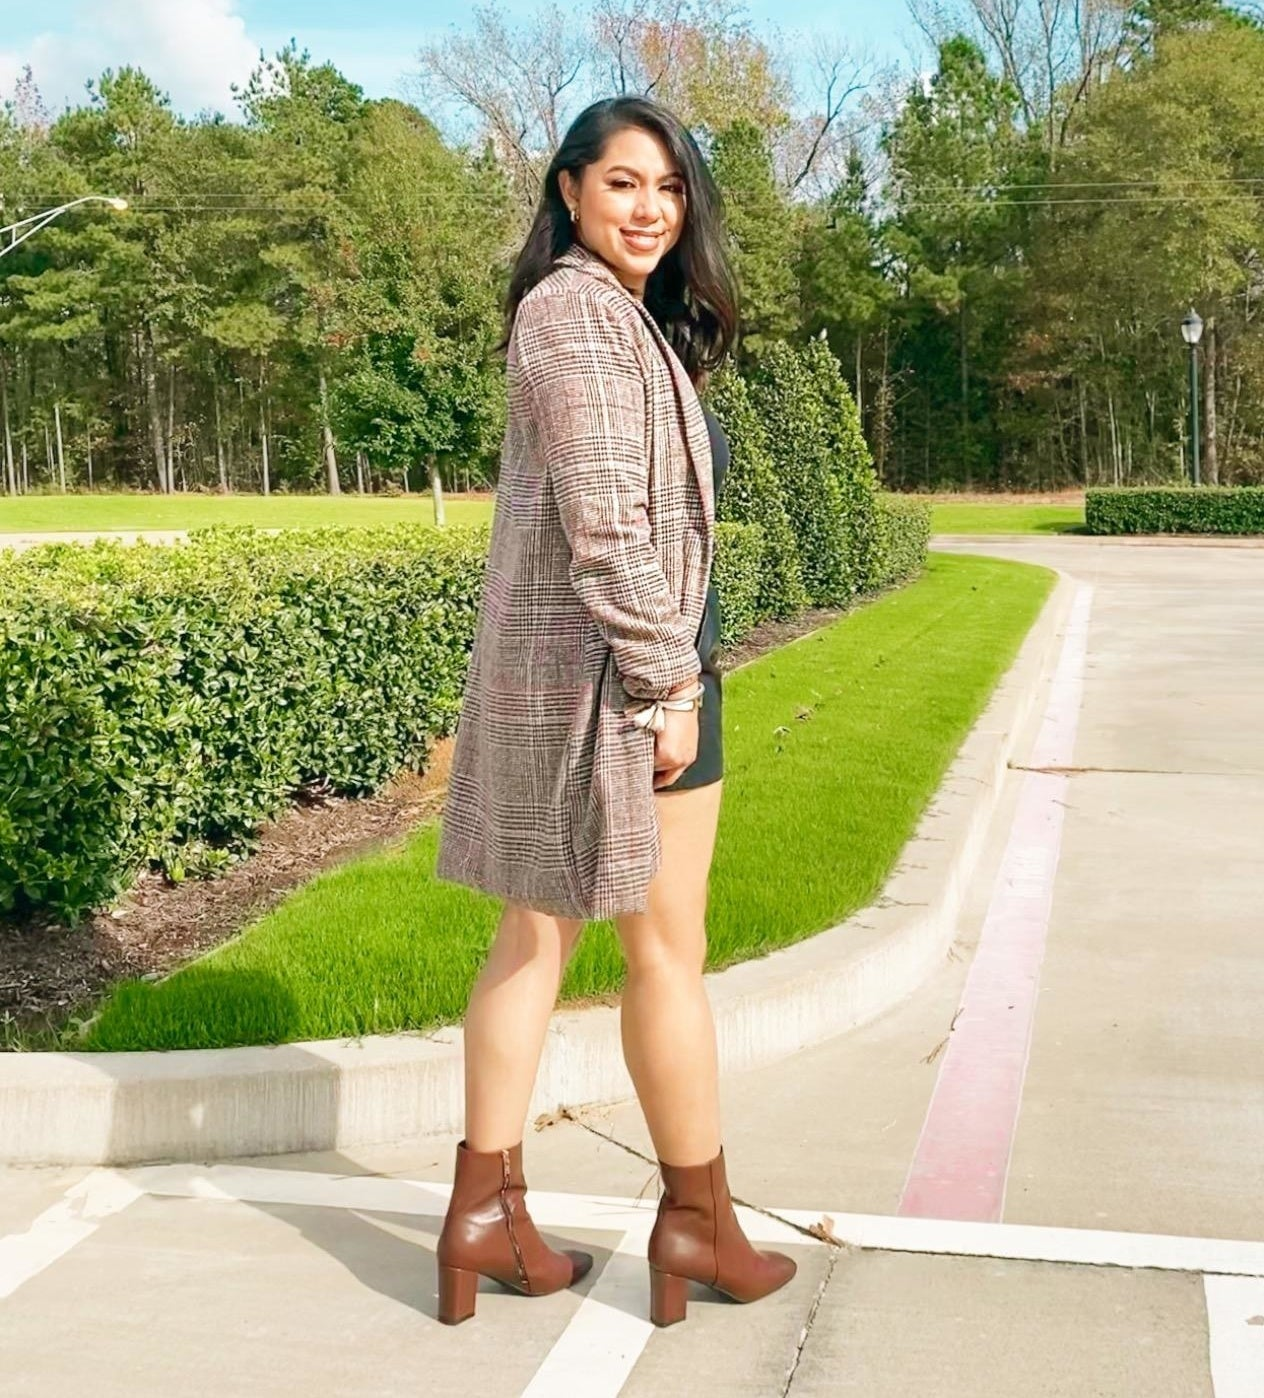 Reviewer wearing the brown plaid coat